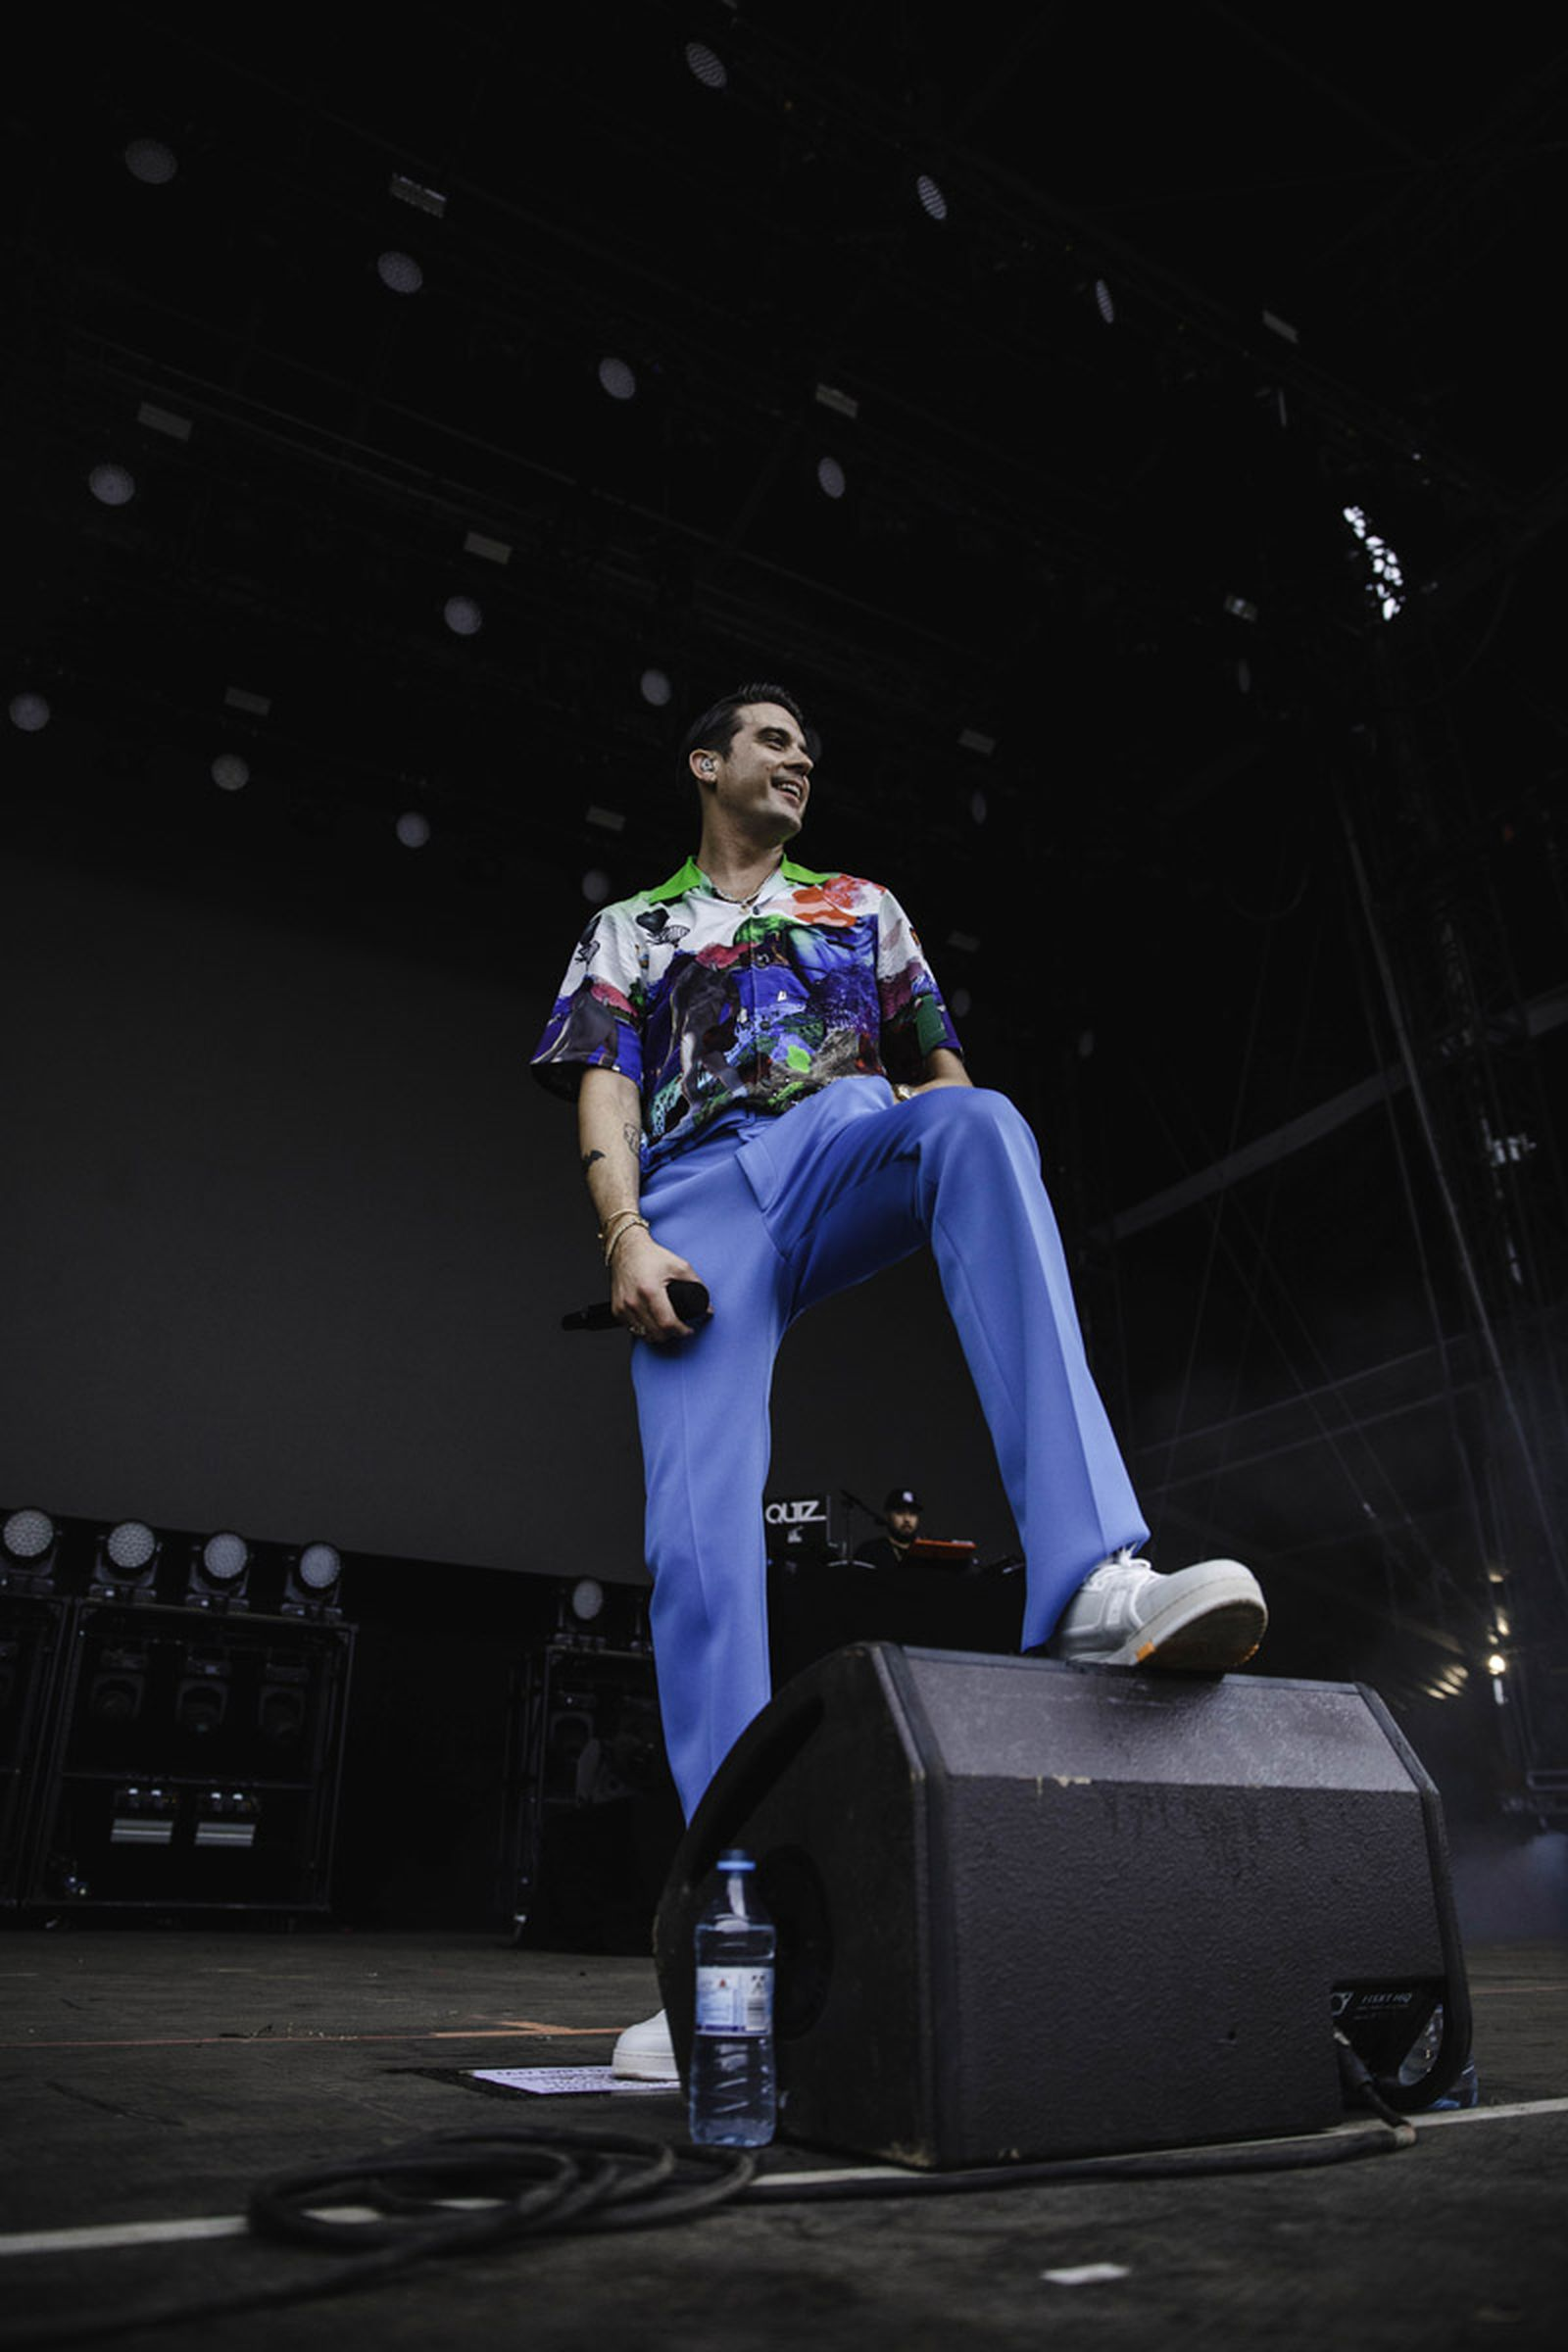 2019 HM Events Wireless Germany Festival Thomas Habr For Web 24 wireless festival 2019